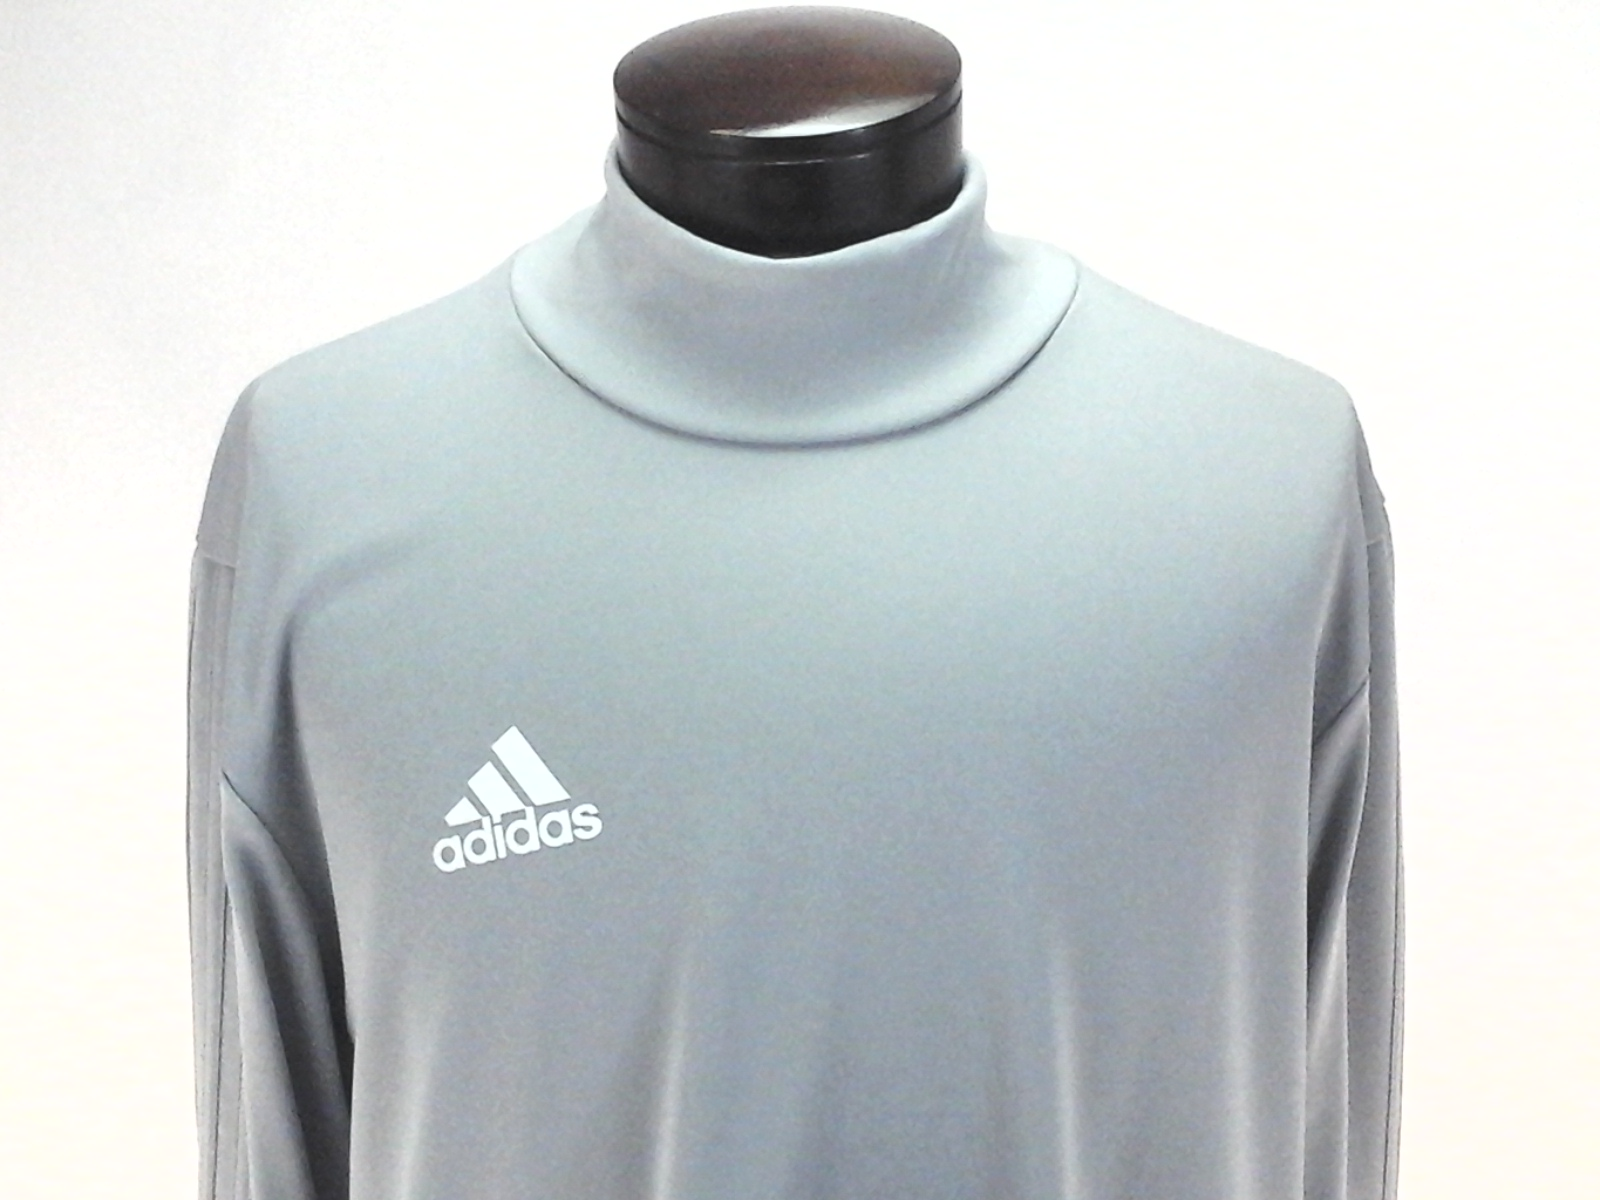 Details about ADIDAS Tiro 17 Training Jersey Gray White Black Climacool Top BQ2741 Men XL New